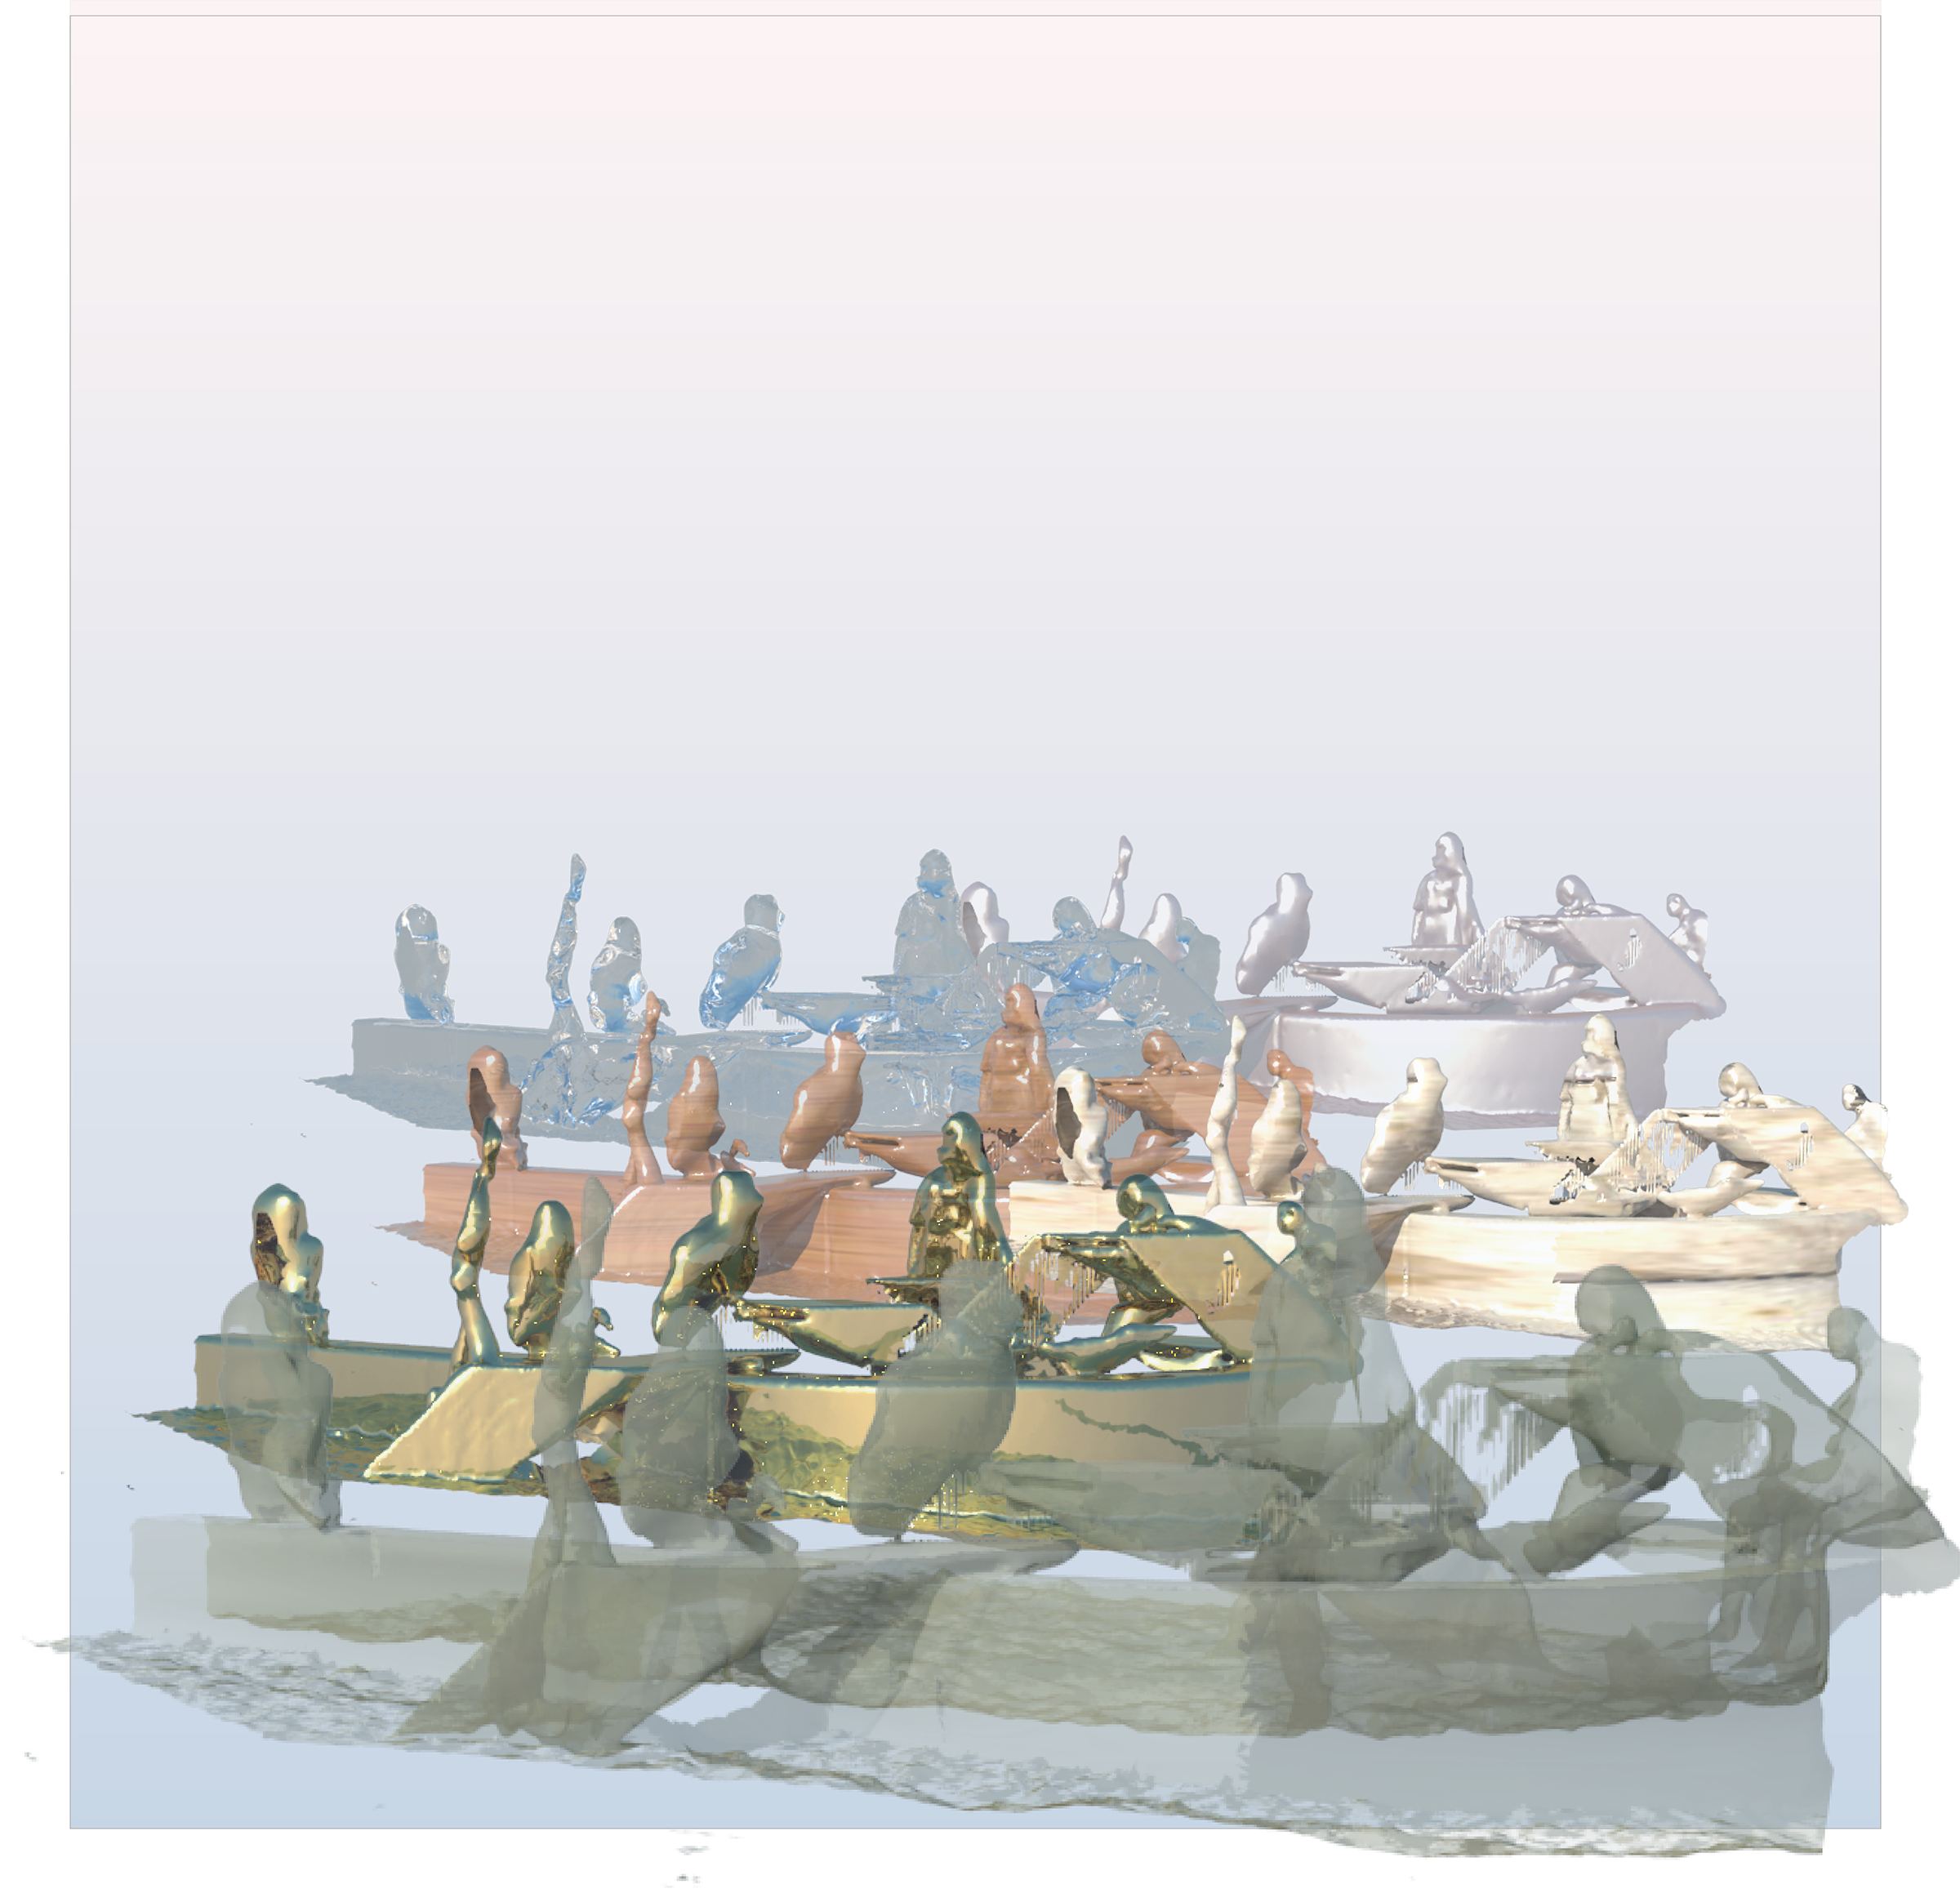 CIty-College-New-York-CUNY-Kari-Kleinmann-3D-laser-scanning-point-cloud-new-york.png